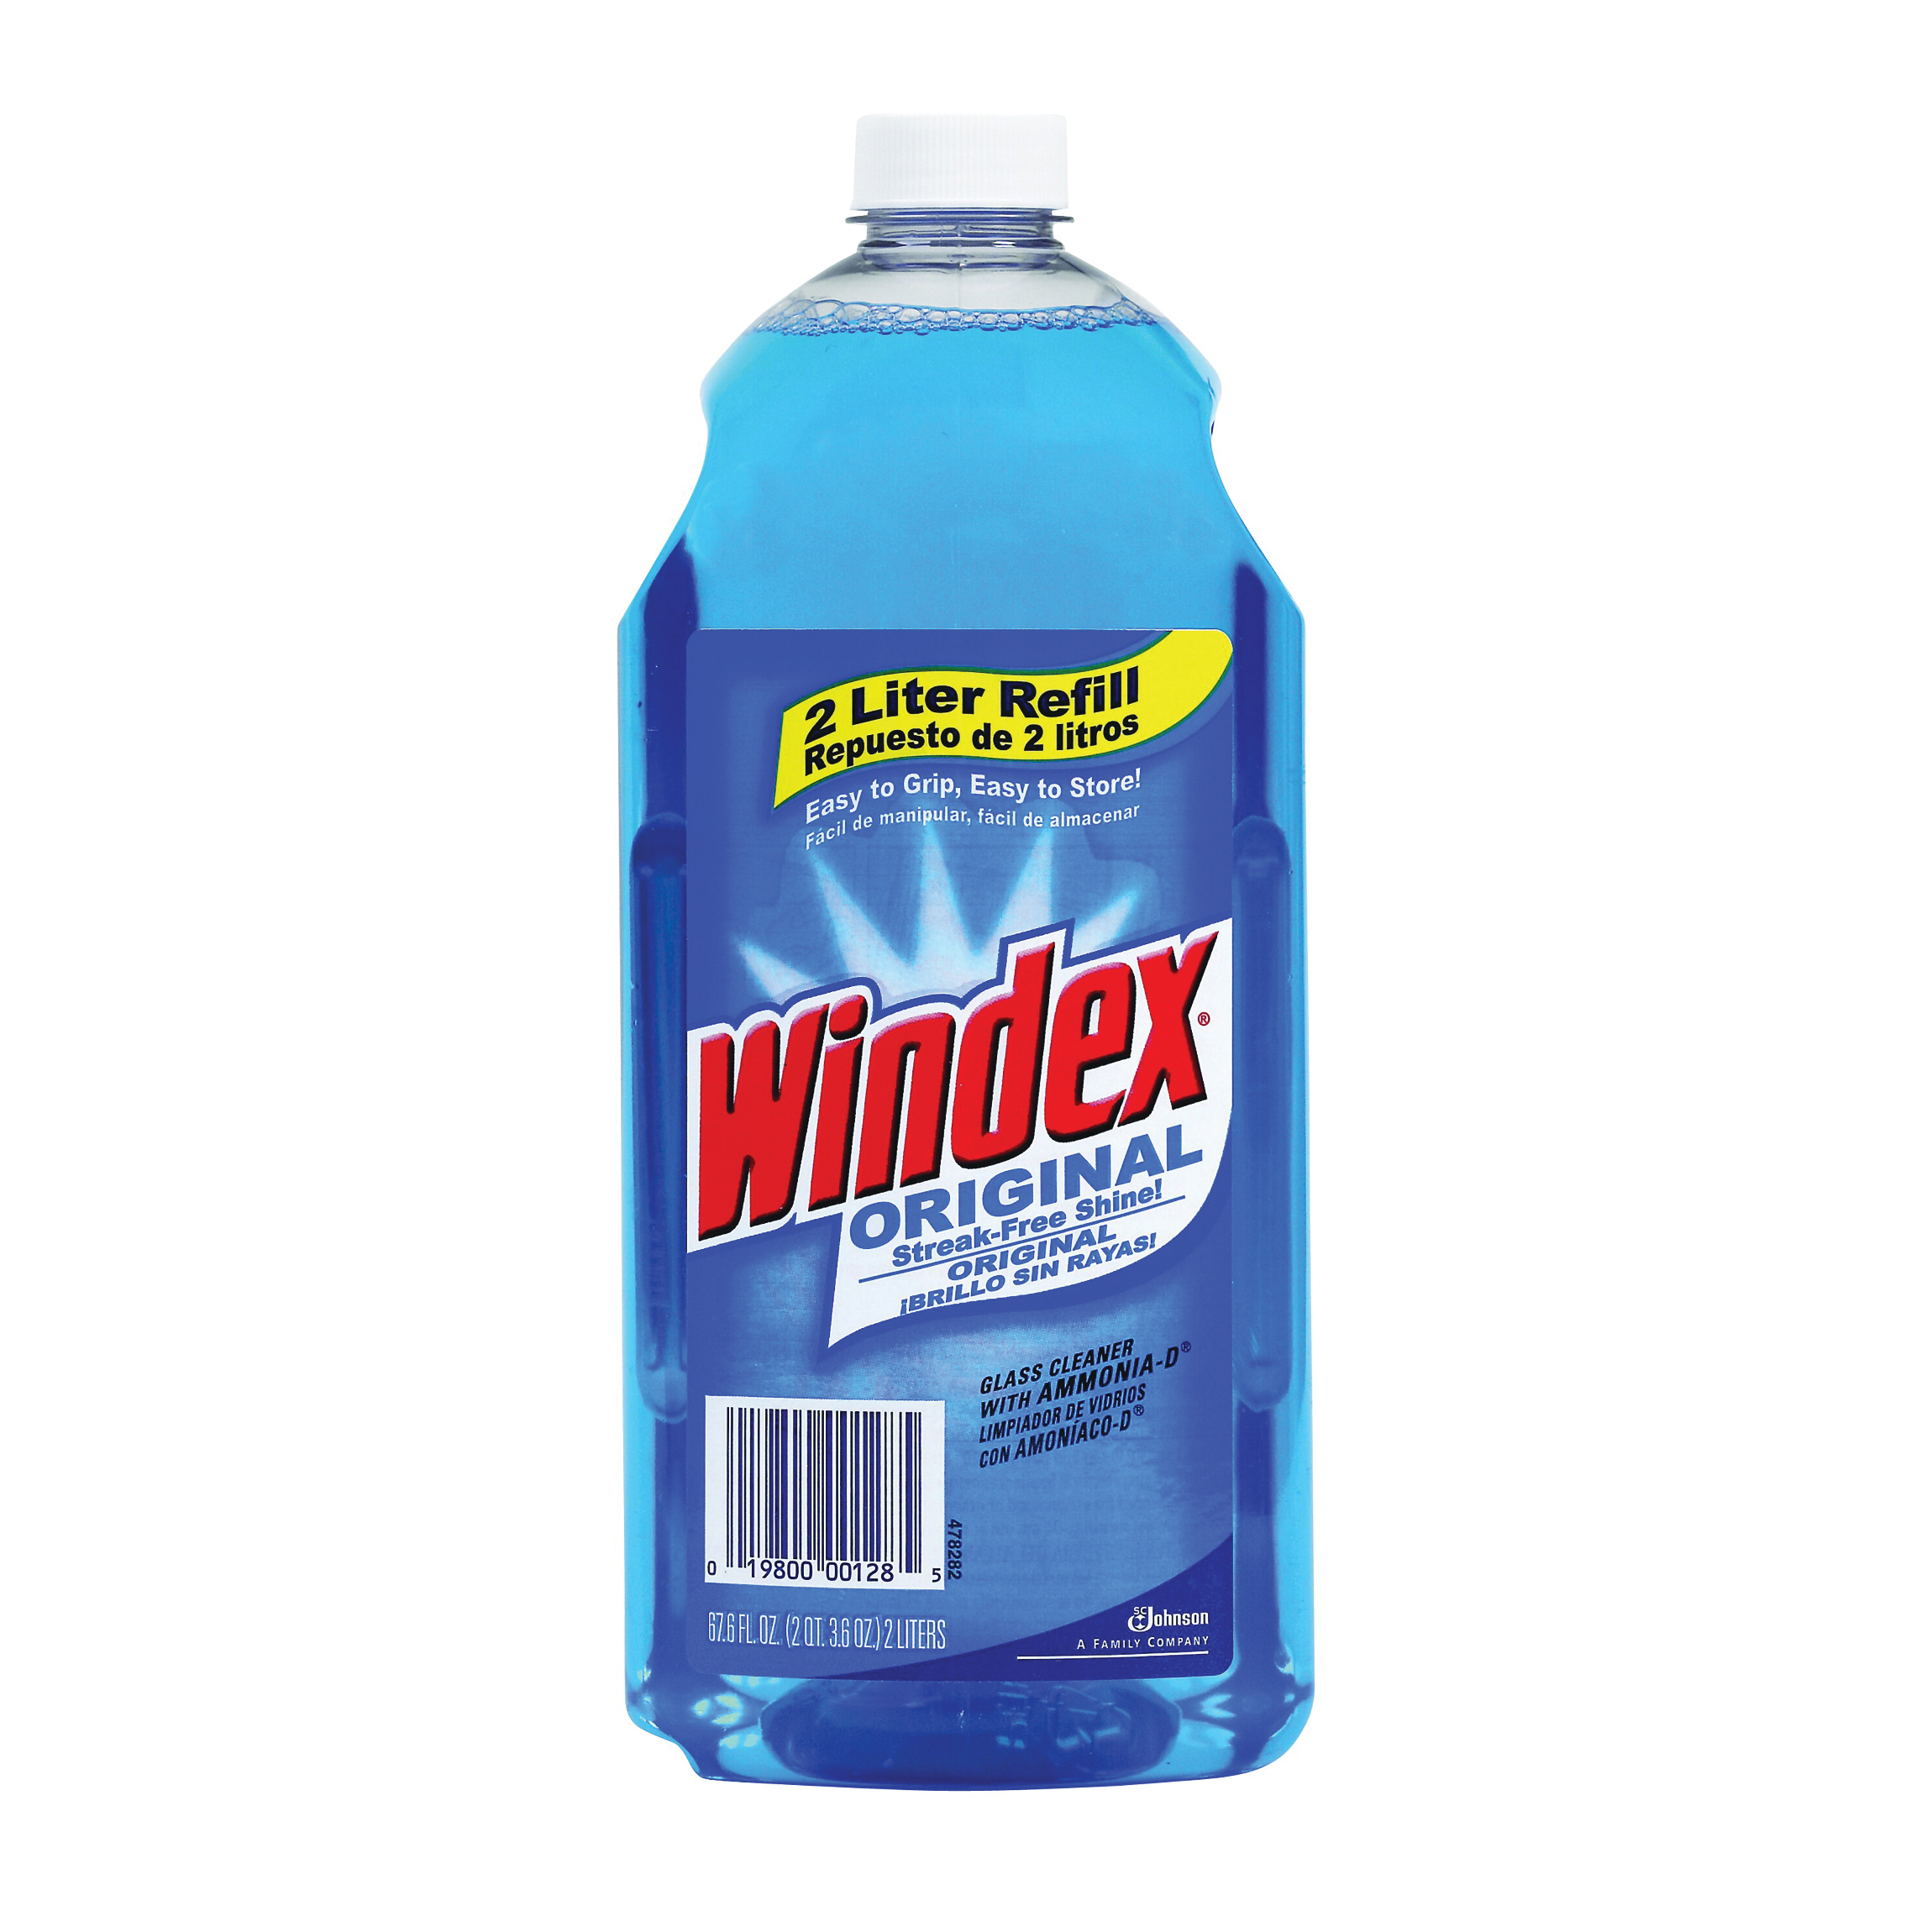 Picture of Windex 00128 Glass Cleaner, 2 L Package, Bottle, Liquid, Floral, Blue